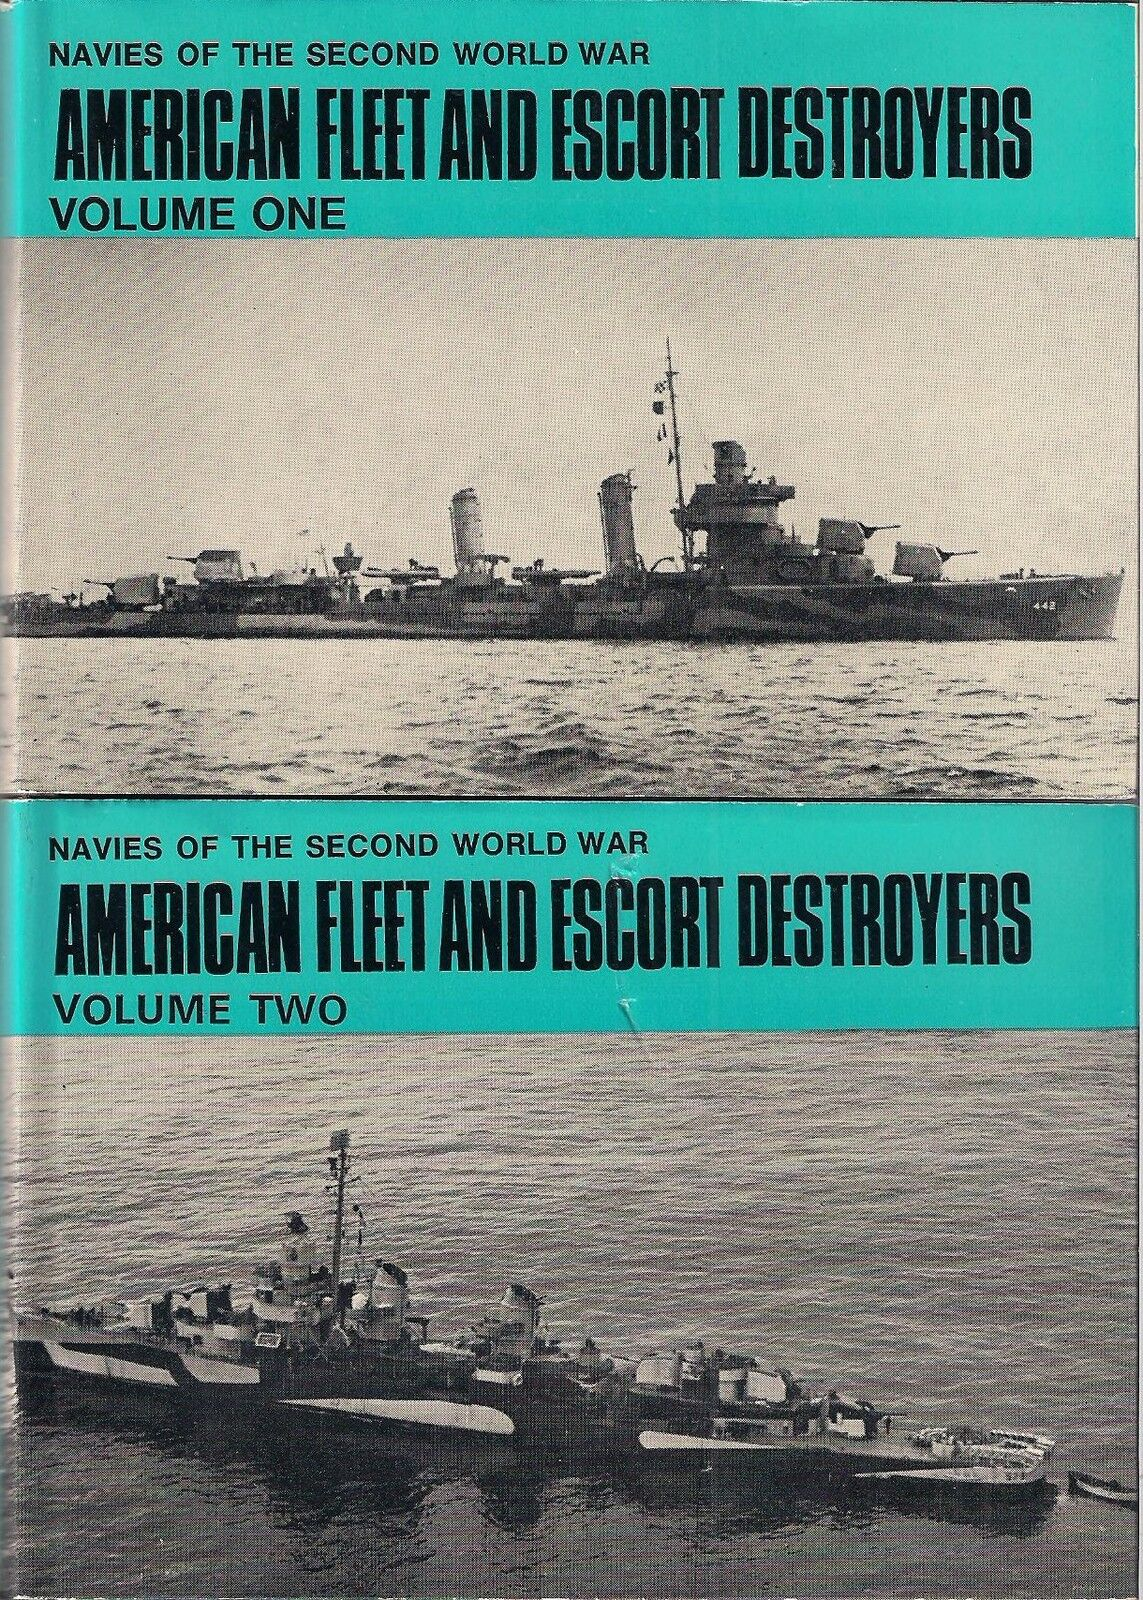 (RARE) American Fleet and Escort Destroyers, Vol. 1 and Vol. 2 by H.T. Lenton